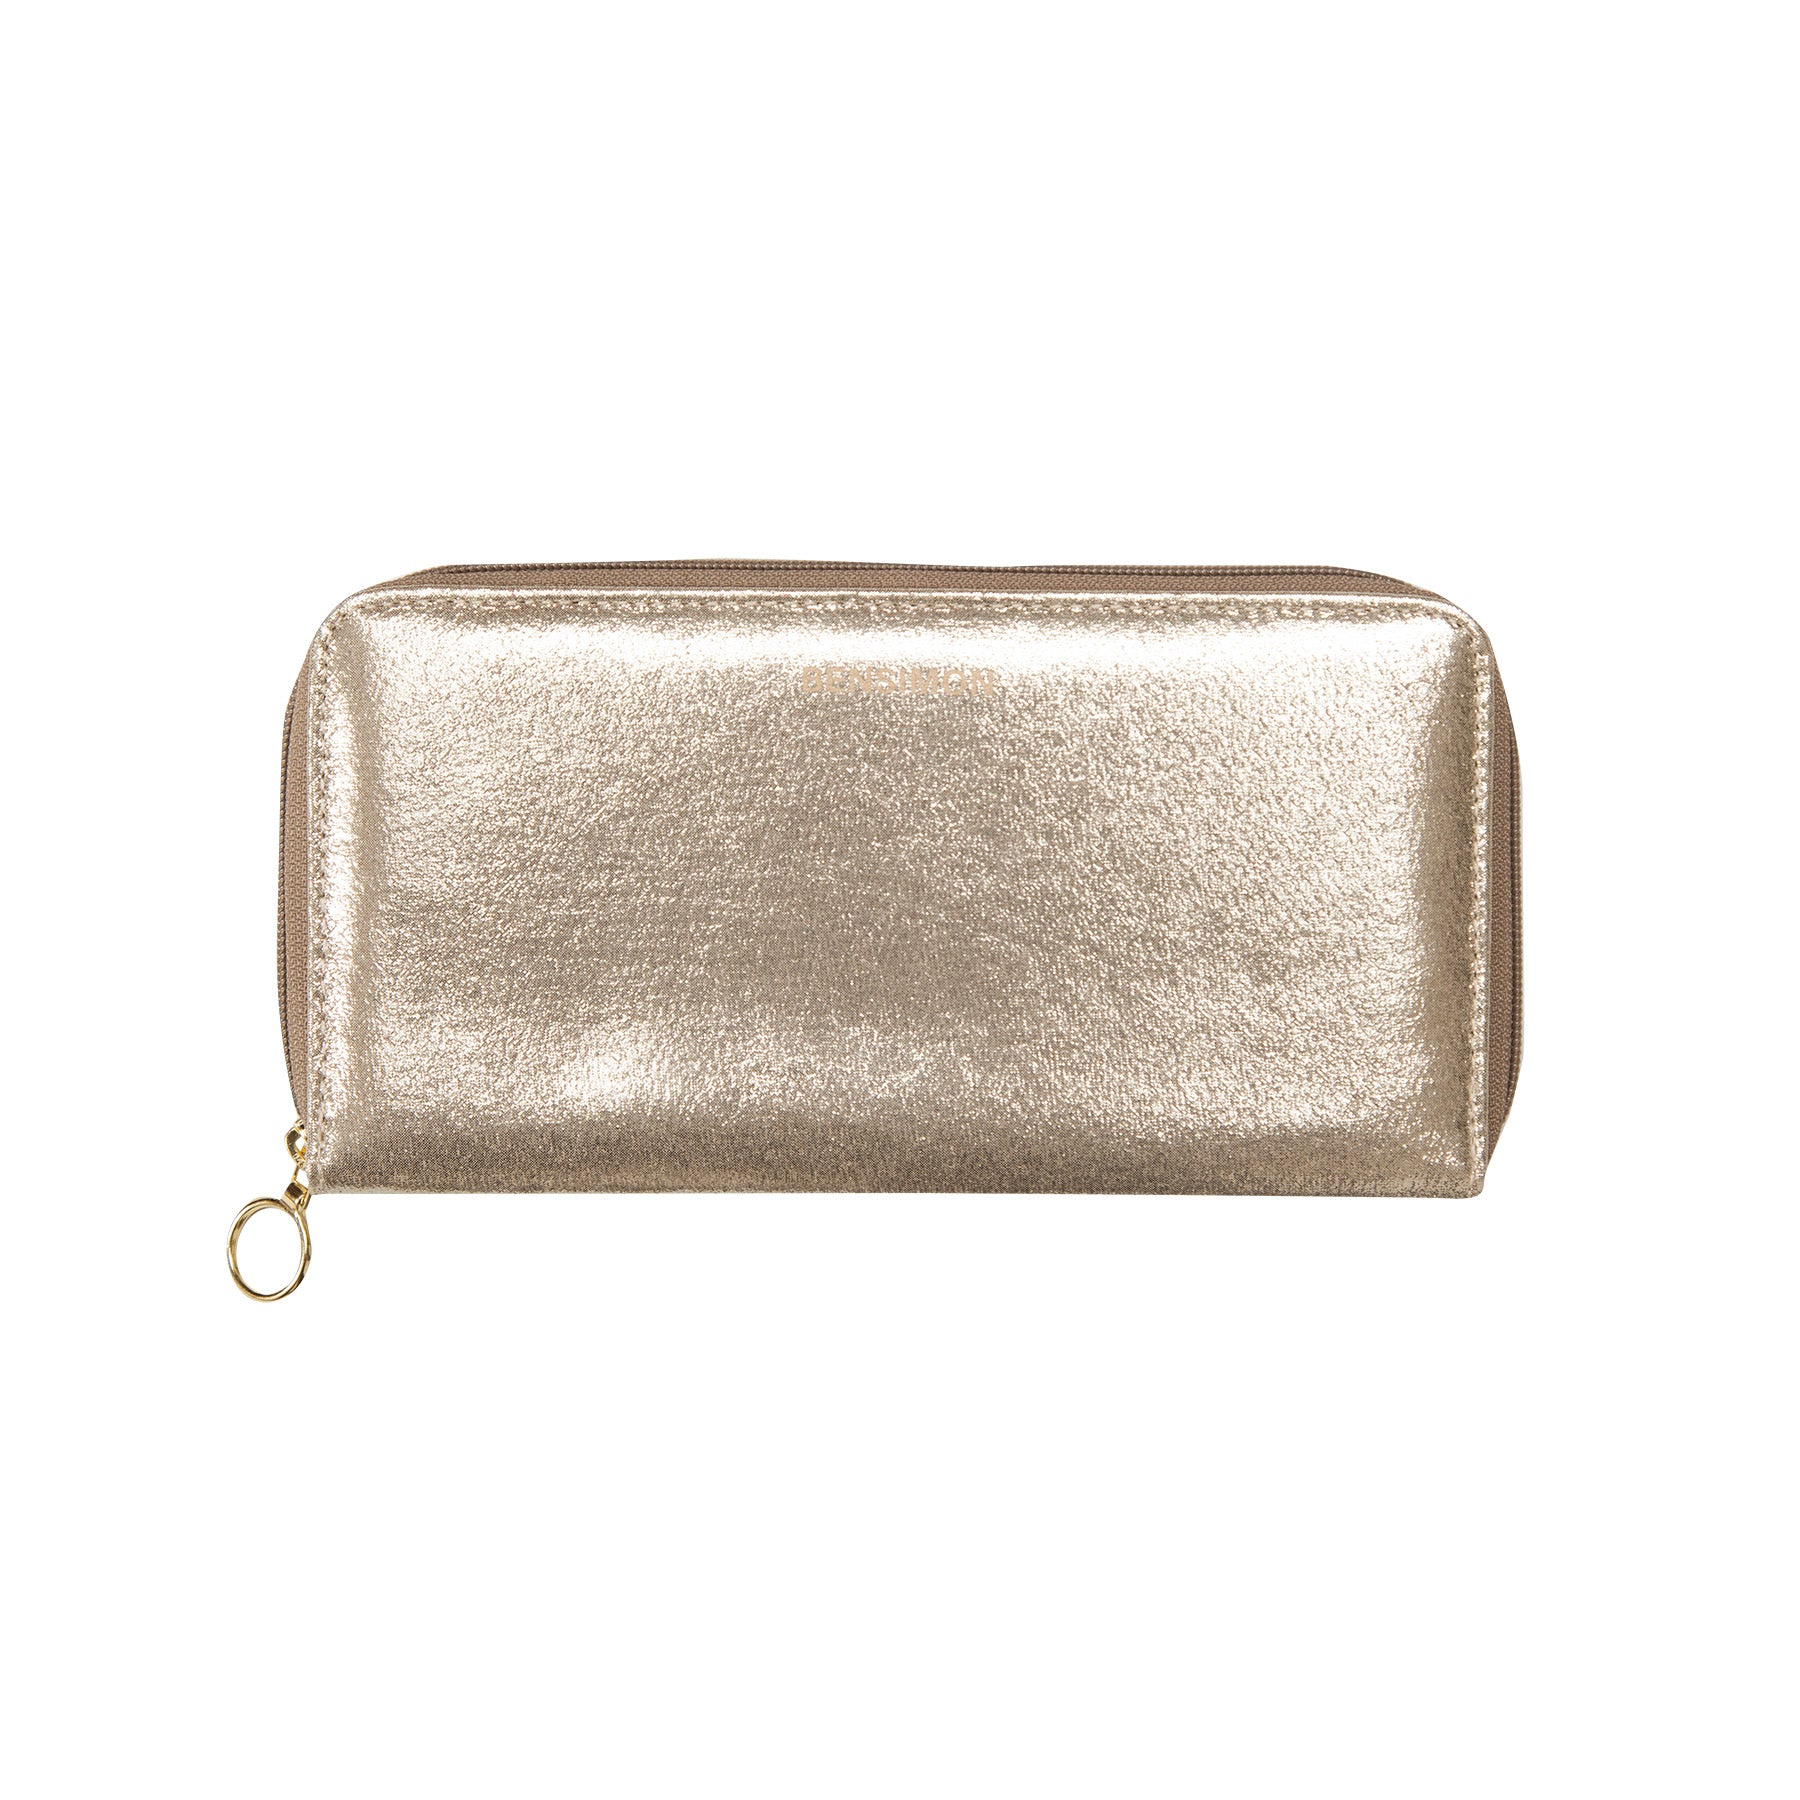 Zipped Wallet - Champagne